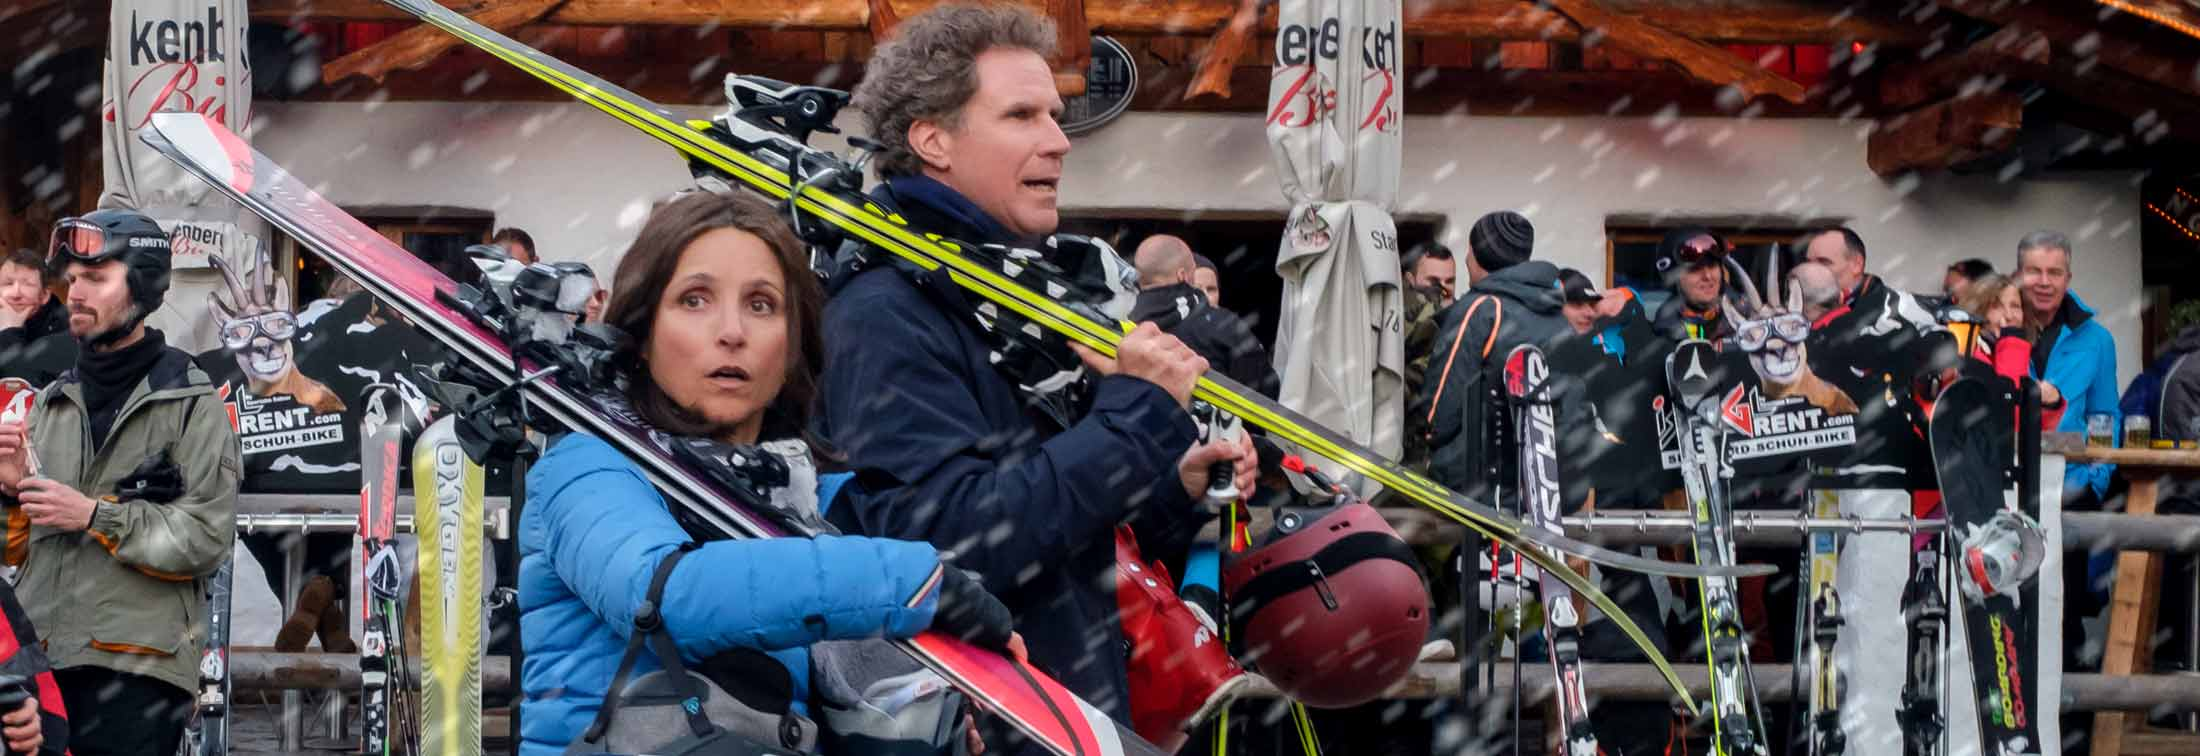 Downhill - A slippery slope for Julia Louis-Dreyfus and Will Ferrell